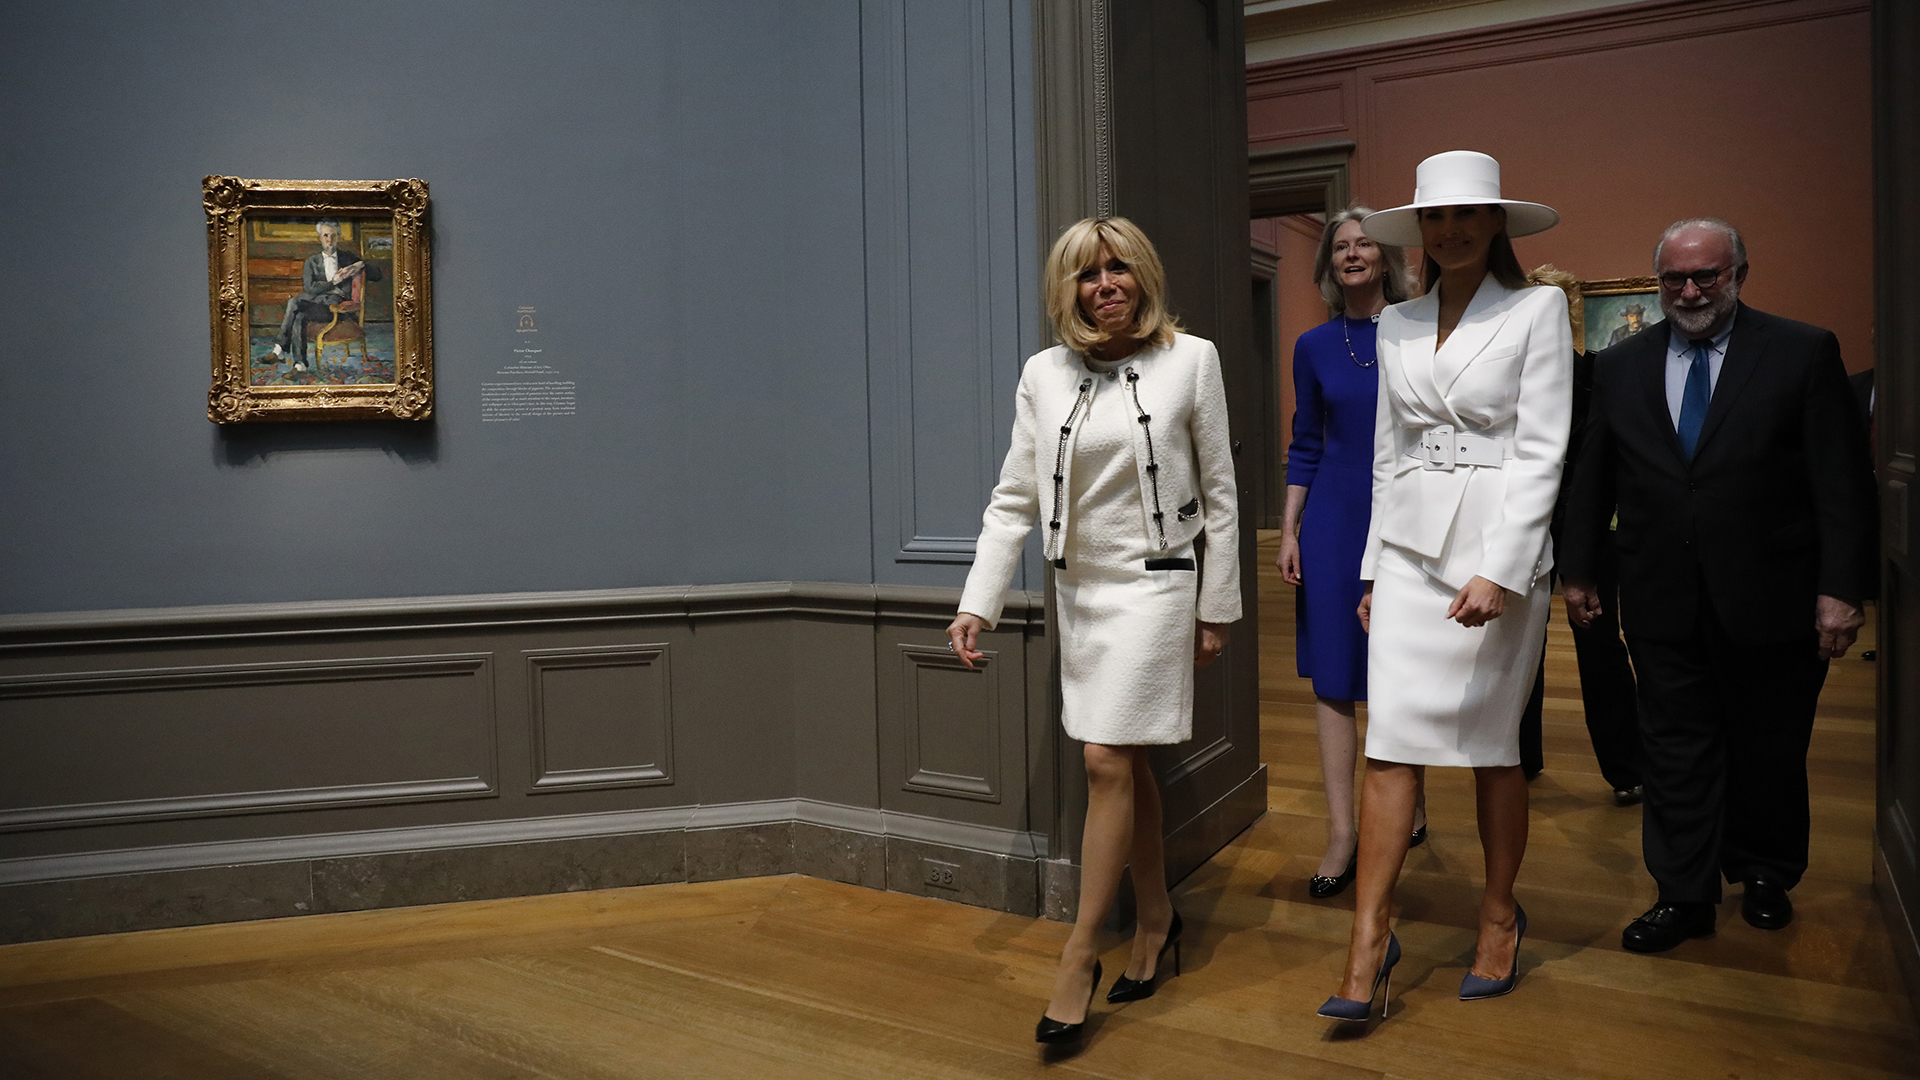 WASHINGTON, DC - April 24: First Lady Melania Trump and French first lady Brigitte Macron tour the National Gallery of Art on April 24, 2018 in Washington, DC. President Donald Trump is hosting French President Emmanuel Macron for the first state visit of his presidency. Aaron P. Bernstein/Getty Images/AFP